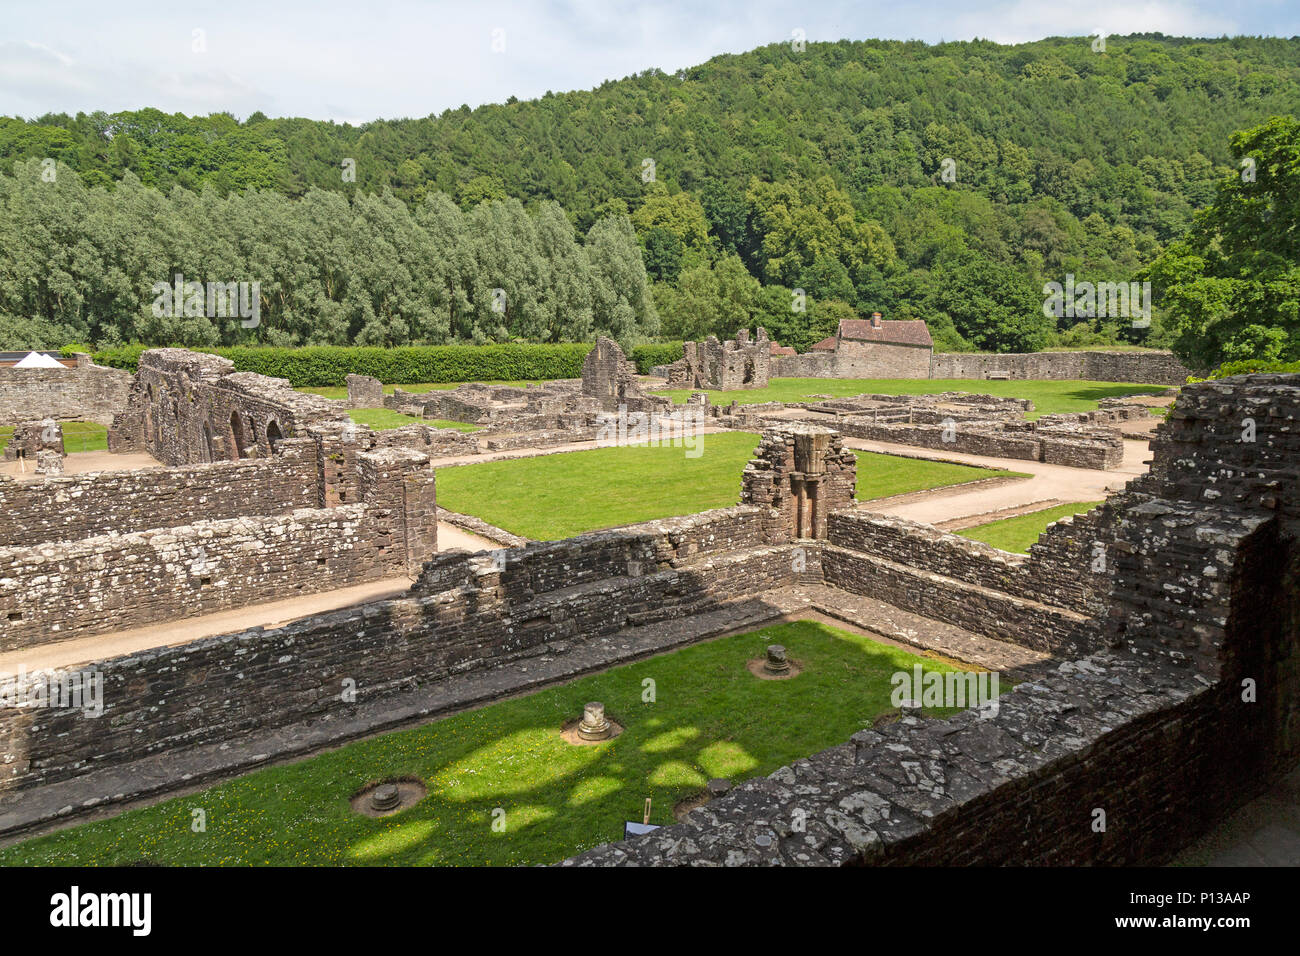 Tintern Abbey, Wales, on the banks of the River Wye. Founded by Walter de Clare, Lord of Chepstow, on 9 May 1131. The 2nd Cistercian abbey in Britain. - Stock Image